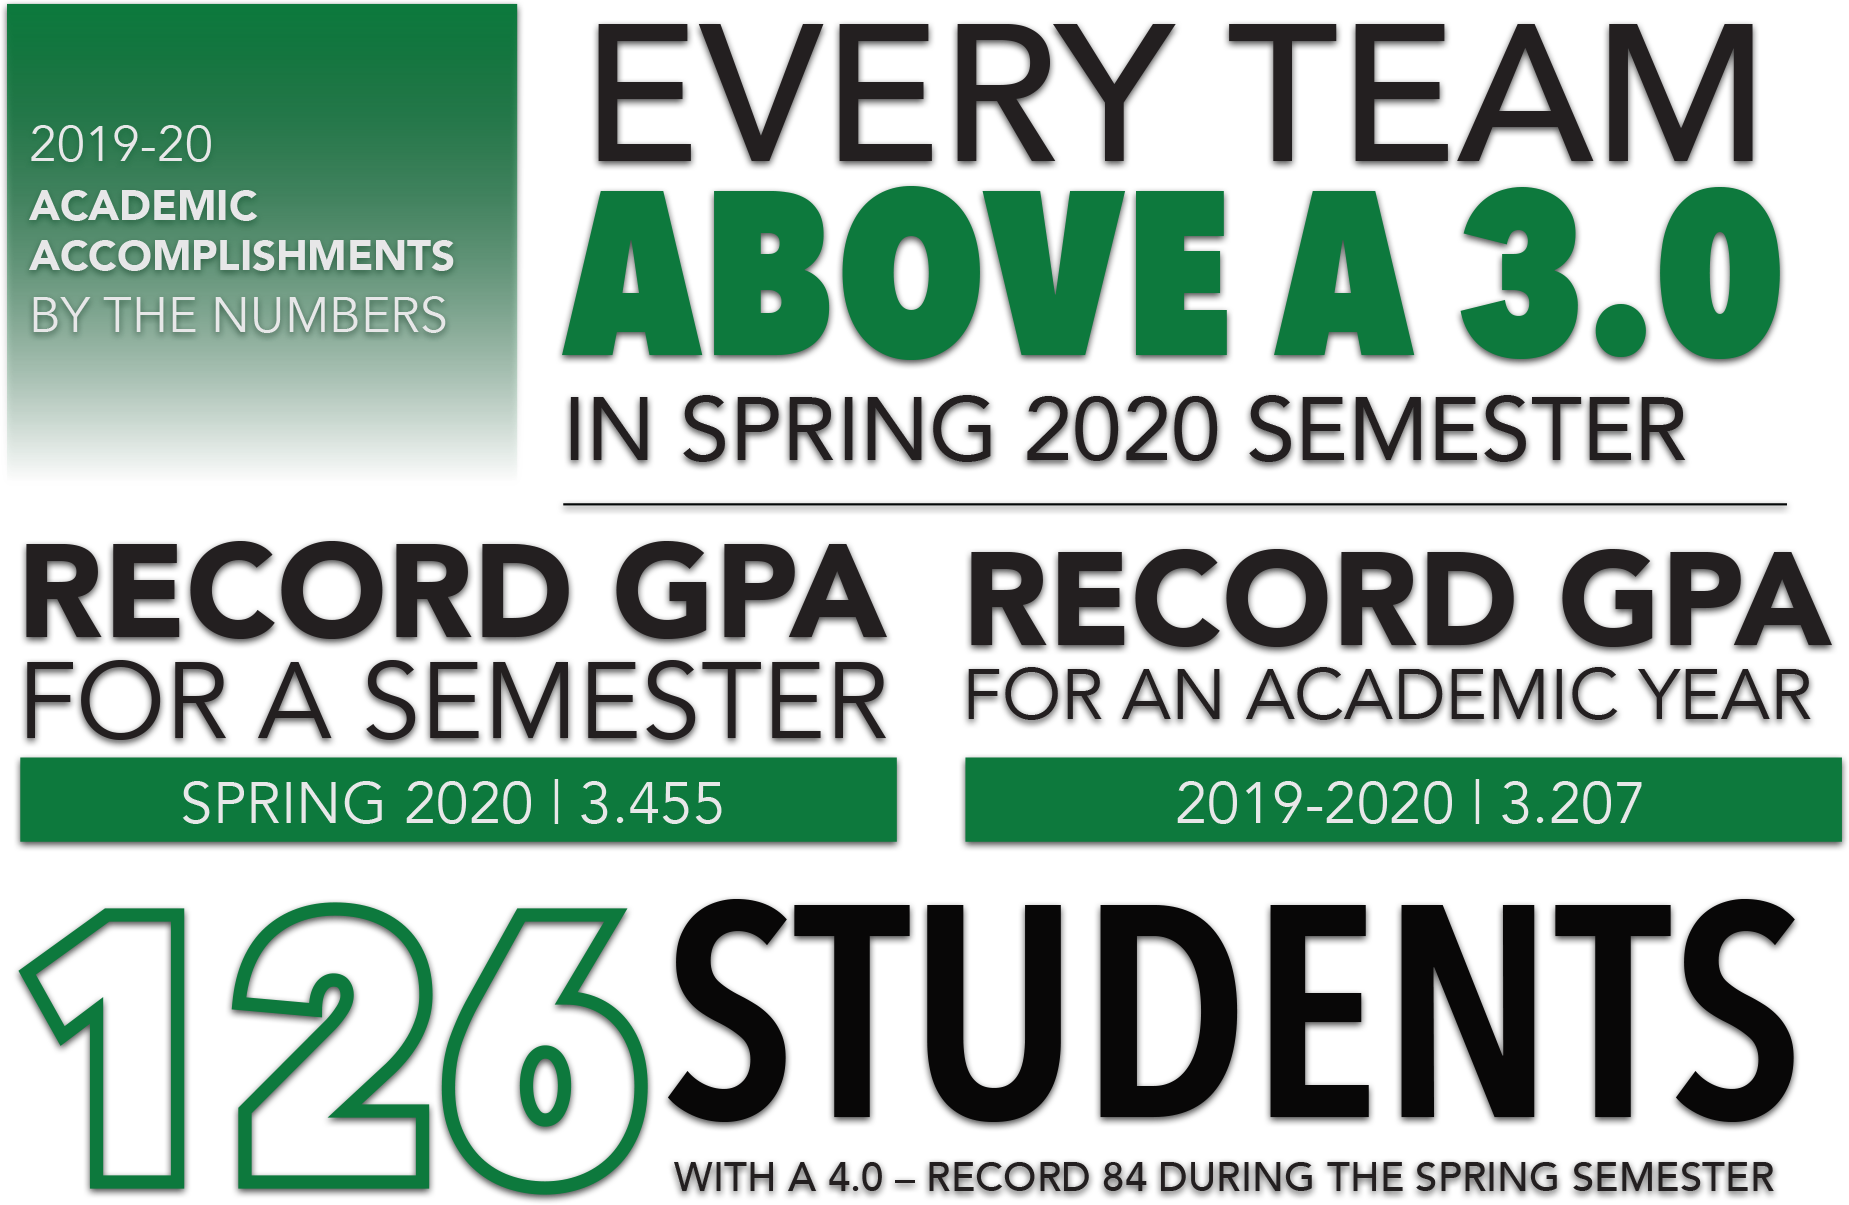 In 2019-20 North Texas student-athletes recorded a record 3.207 GPA. In Spring 2020, student-athletes recorded a record 3.455 GPA. Every Mean Green athletic program recorded above a 3.0 GPA. 126 student-athletes recorded a 4.0 GPA across the 2019-2020 academic year.